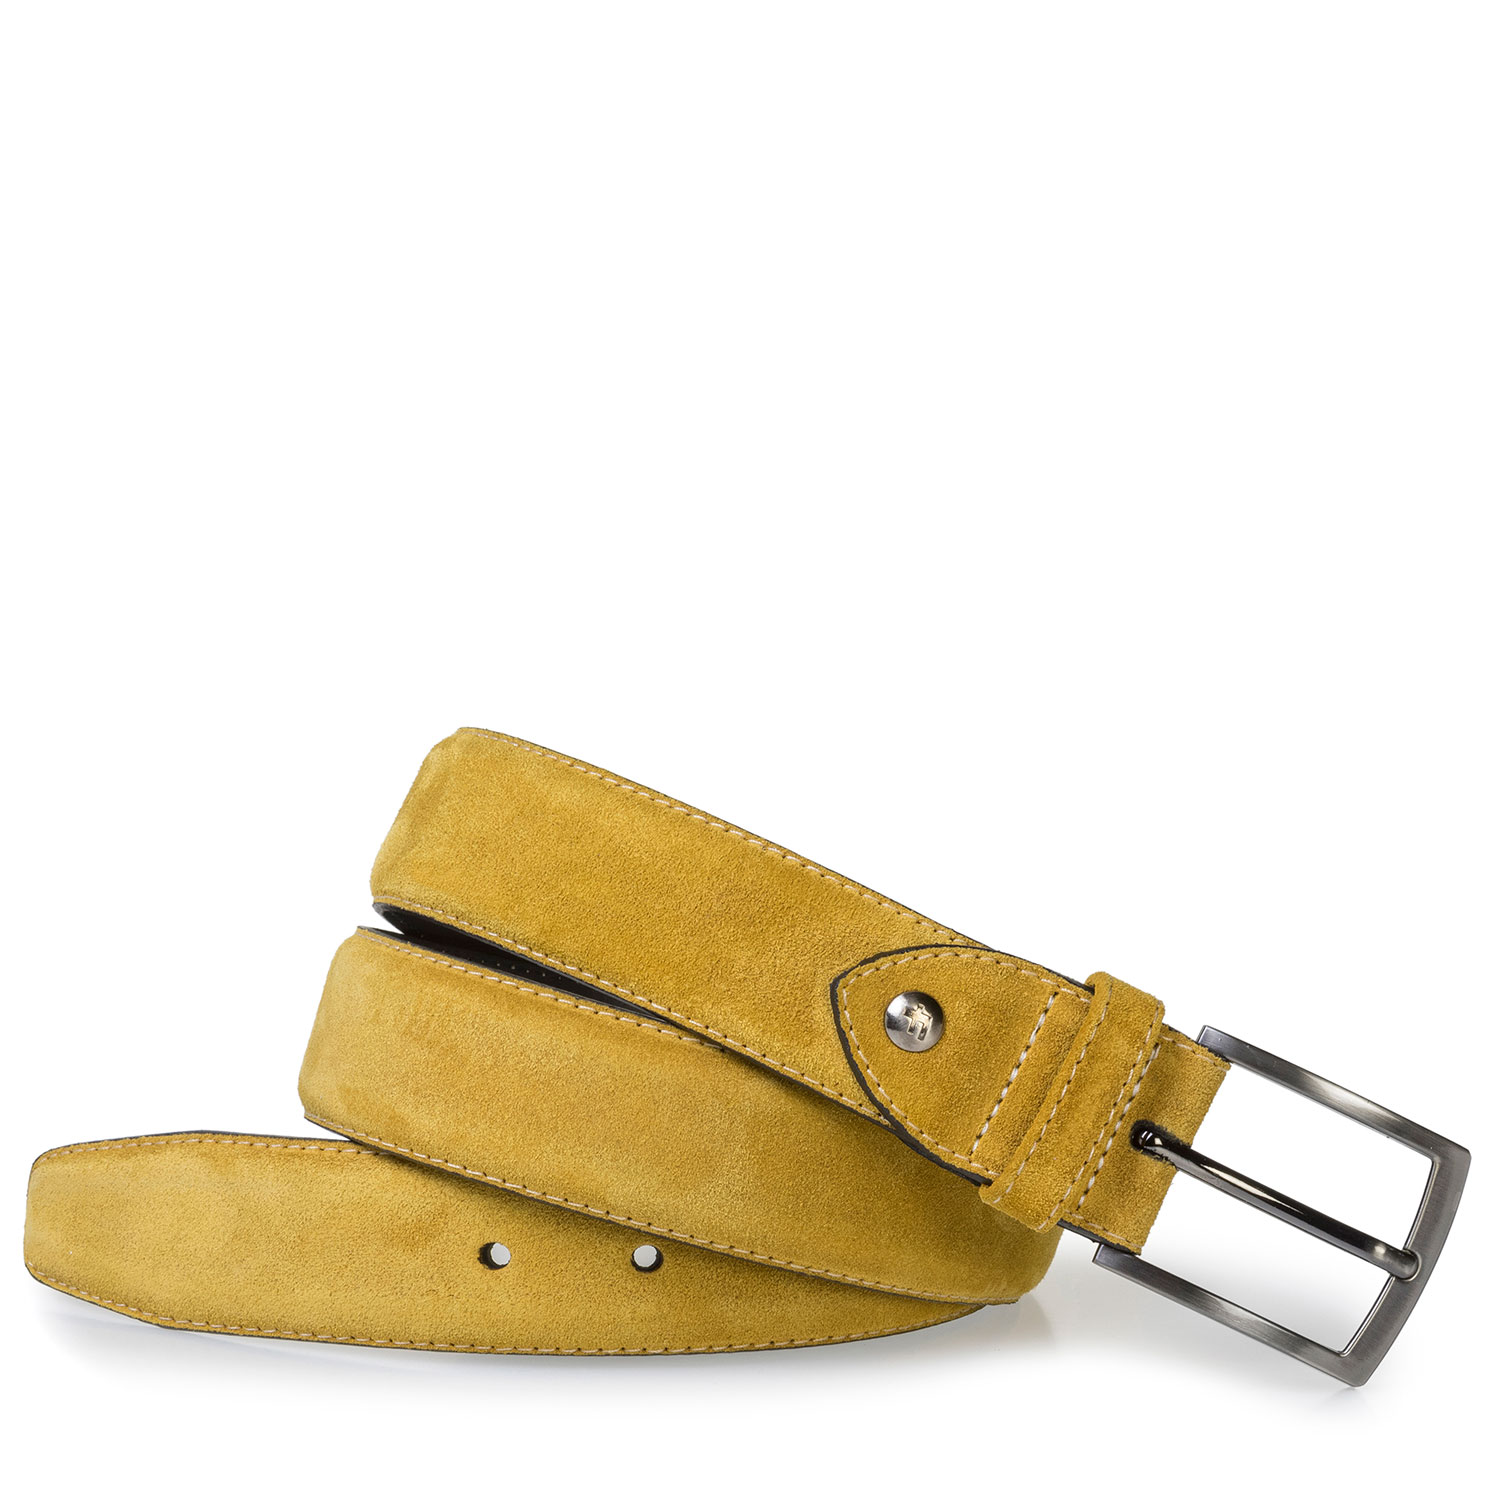 75201/95 - Mustard yellow belt made of waxed suede leather